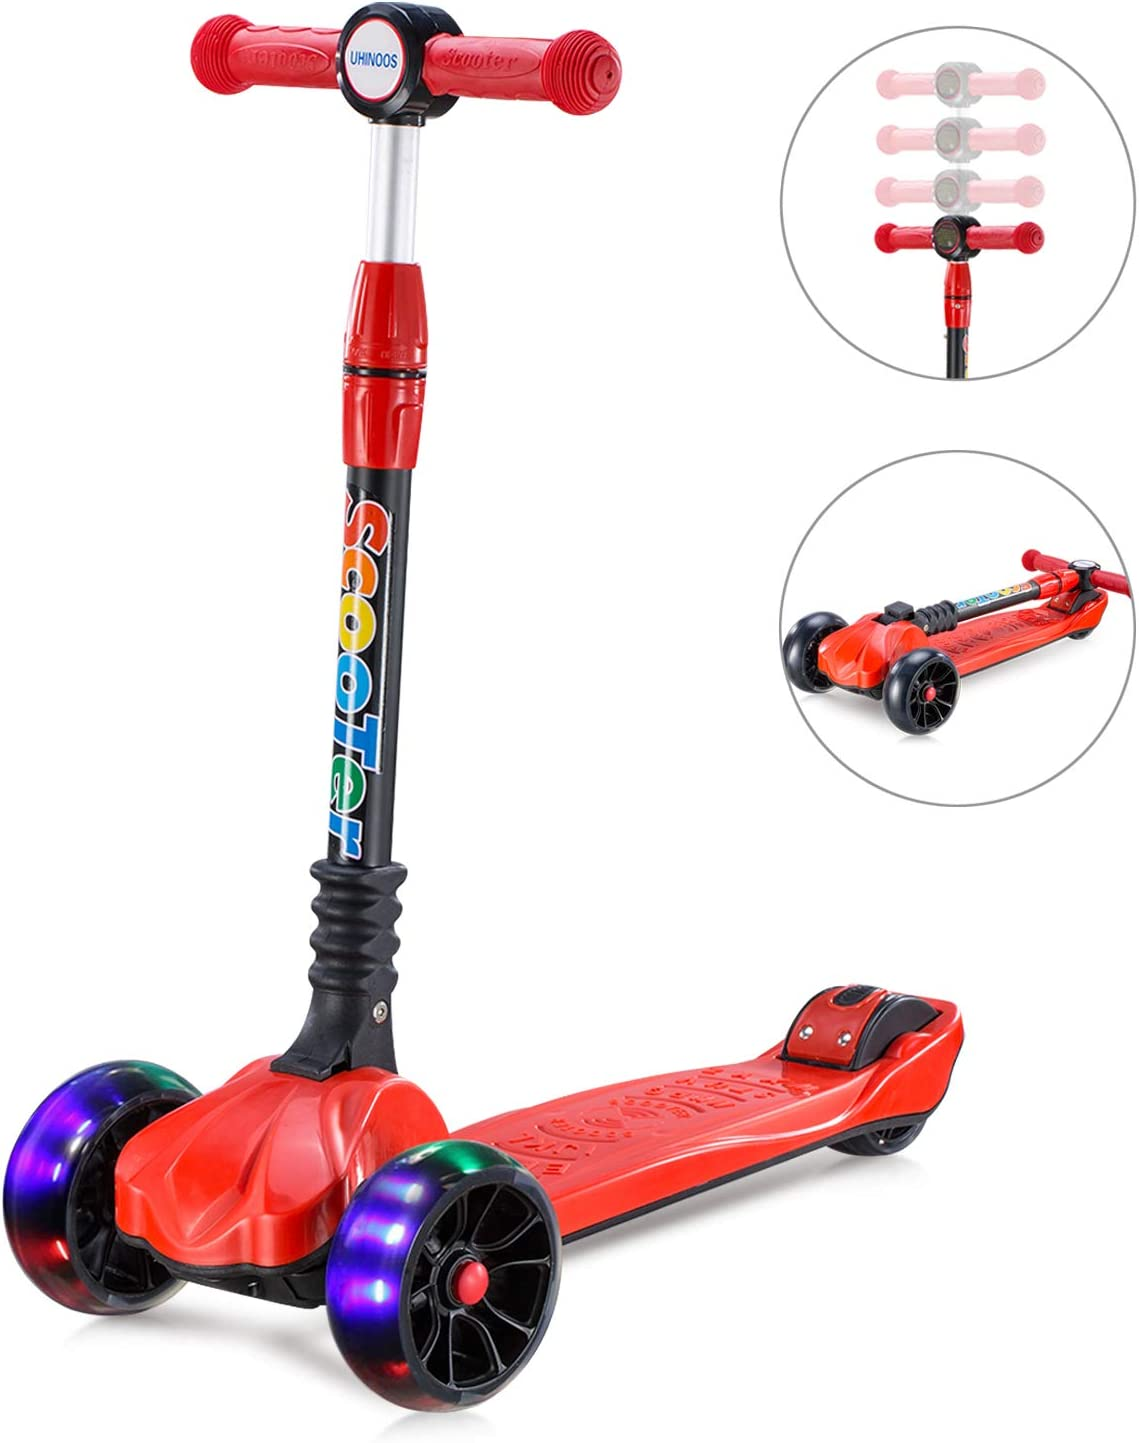 UHINOOS Kick Scooter for Kids Toddlers-4 Adjustable Height 3 Wheel Scooters for Kids-Flashing Wheels Foldable Kids Scooter Best Gifts for Children from 3-12 Years